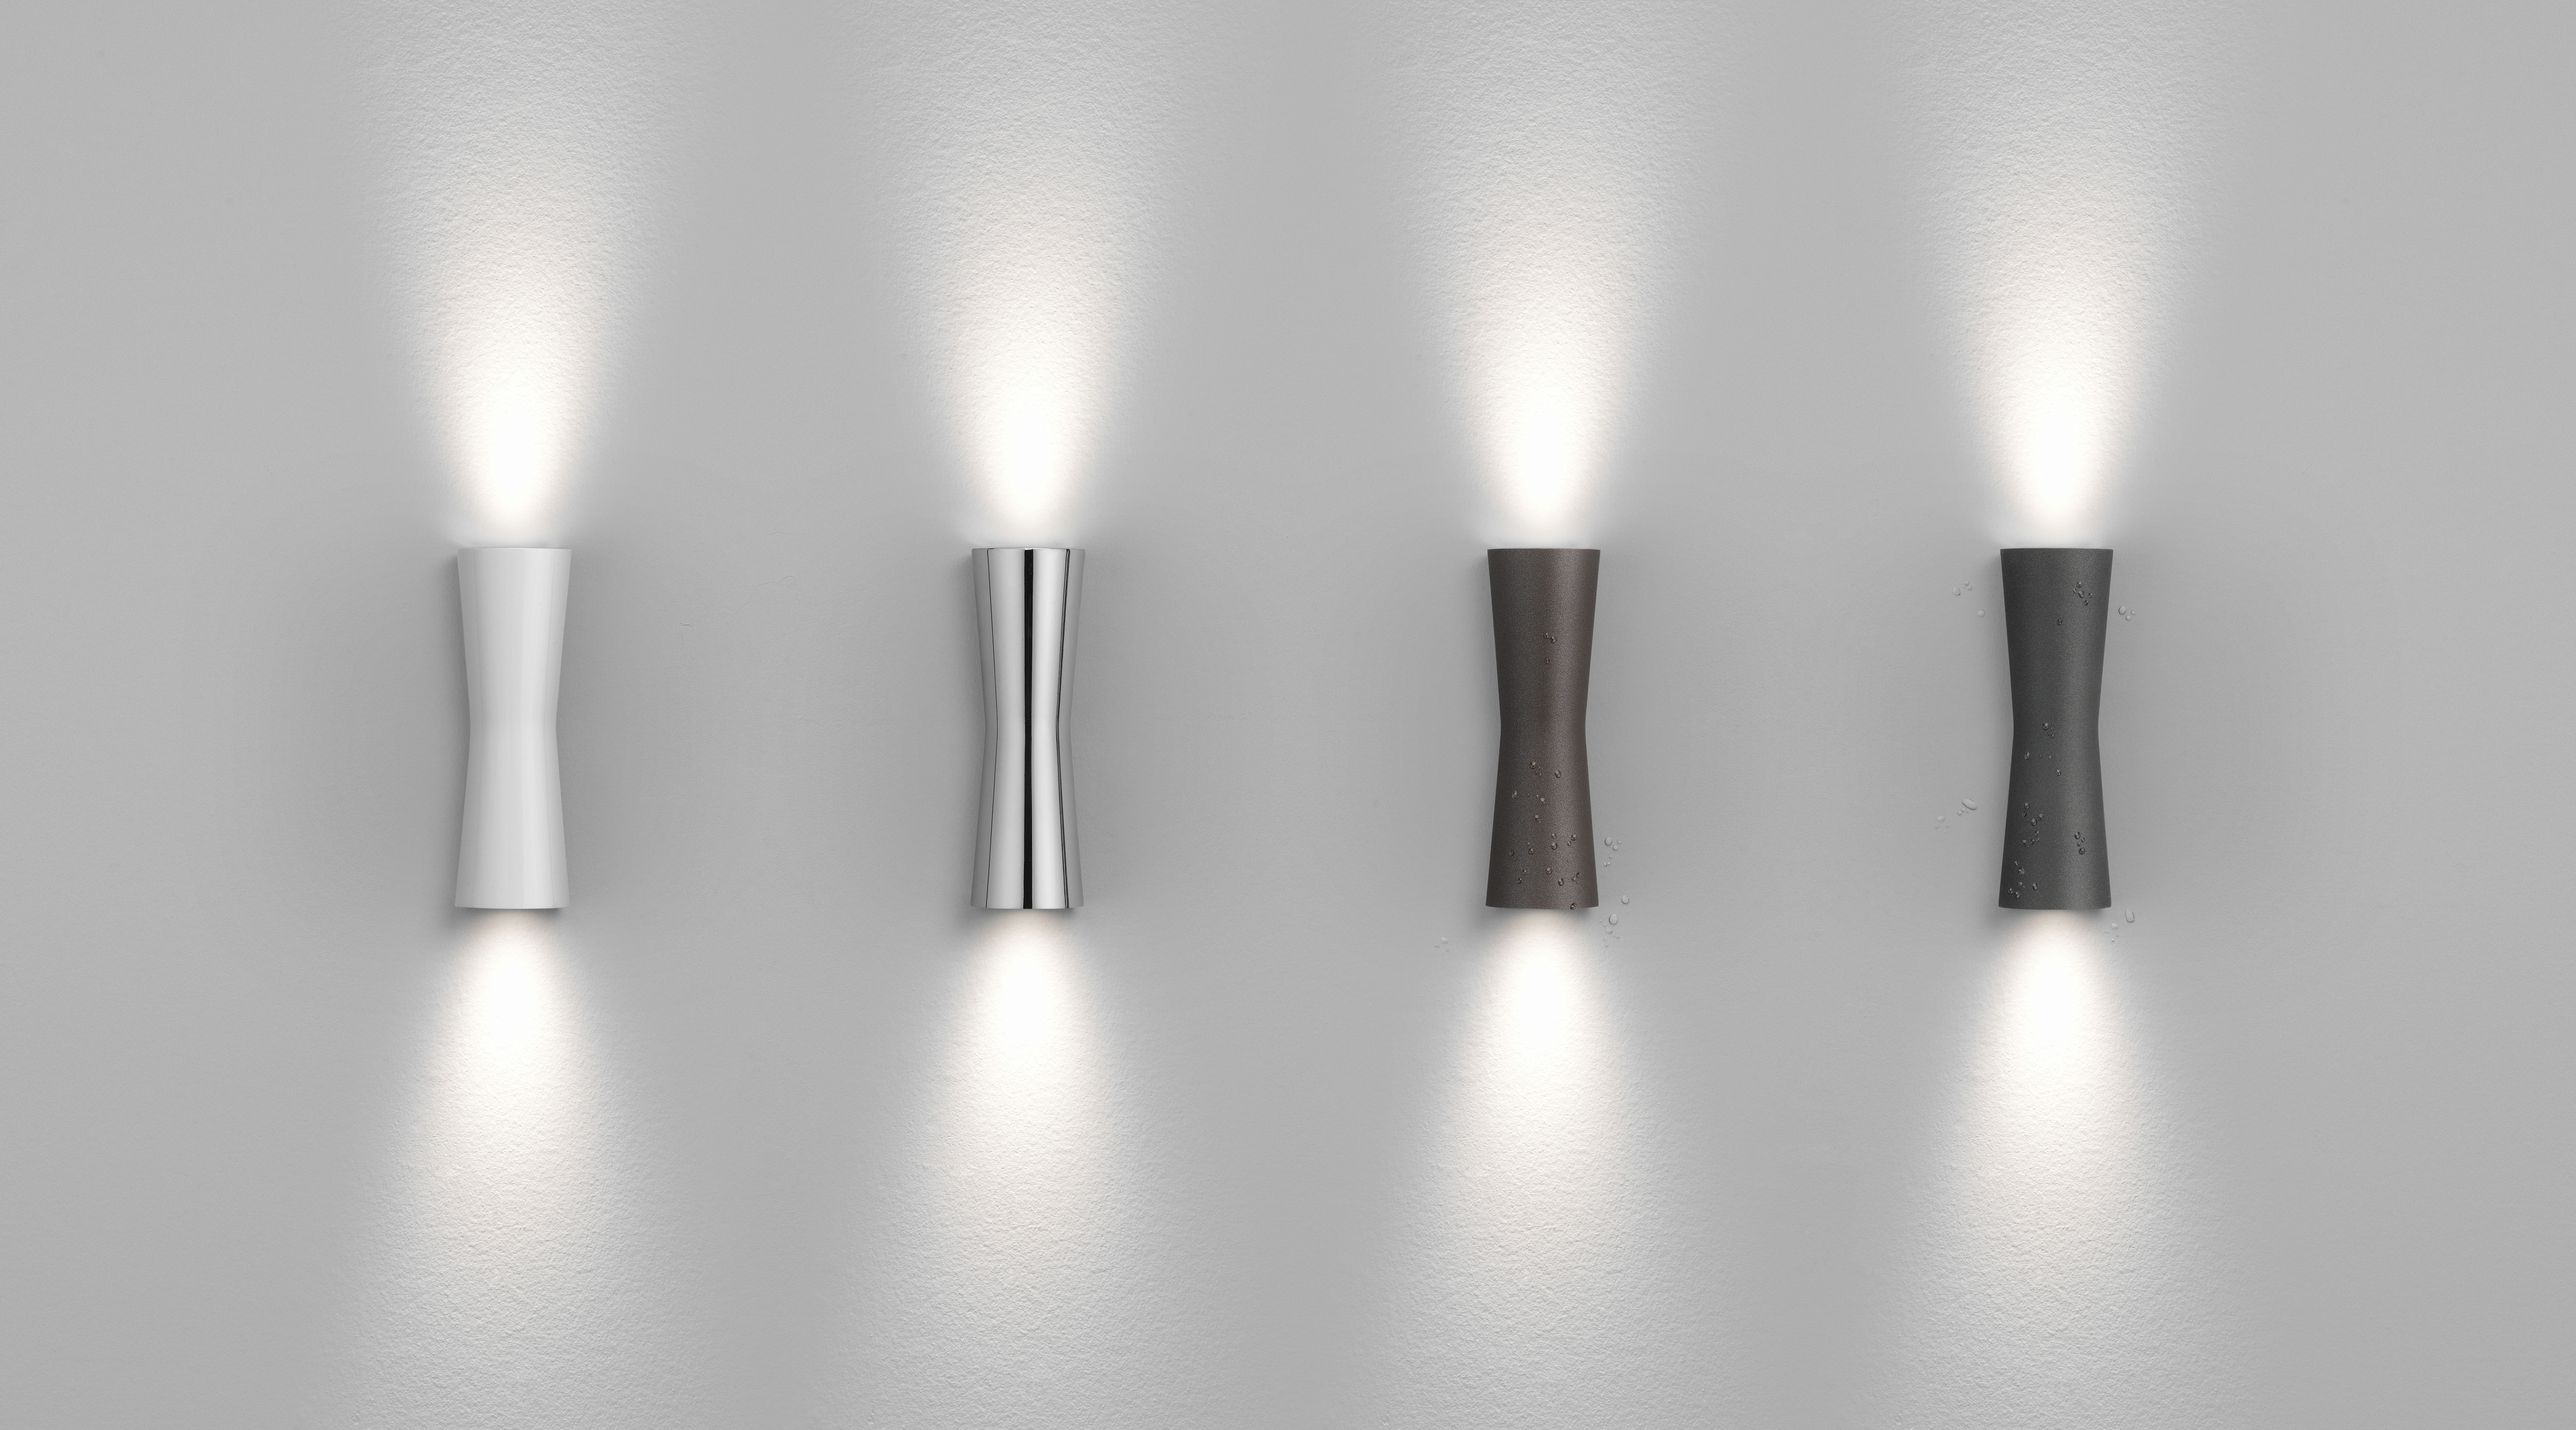 Clessidra 40° Wall light - LED - Indoor / outdoor ...